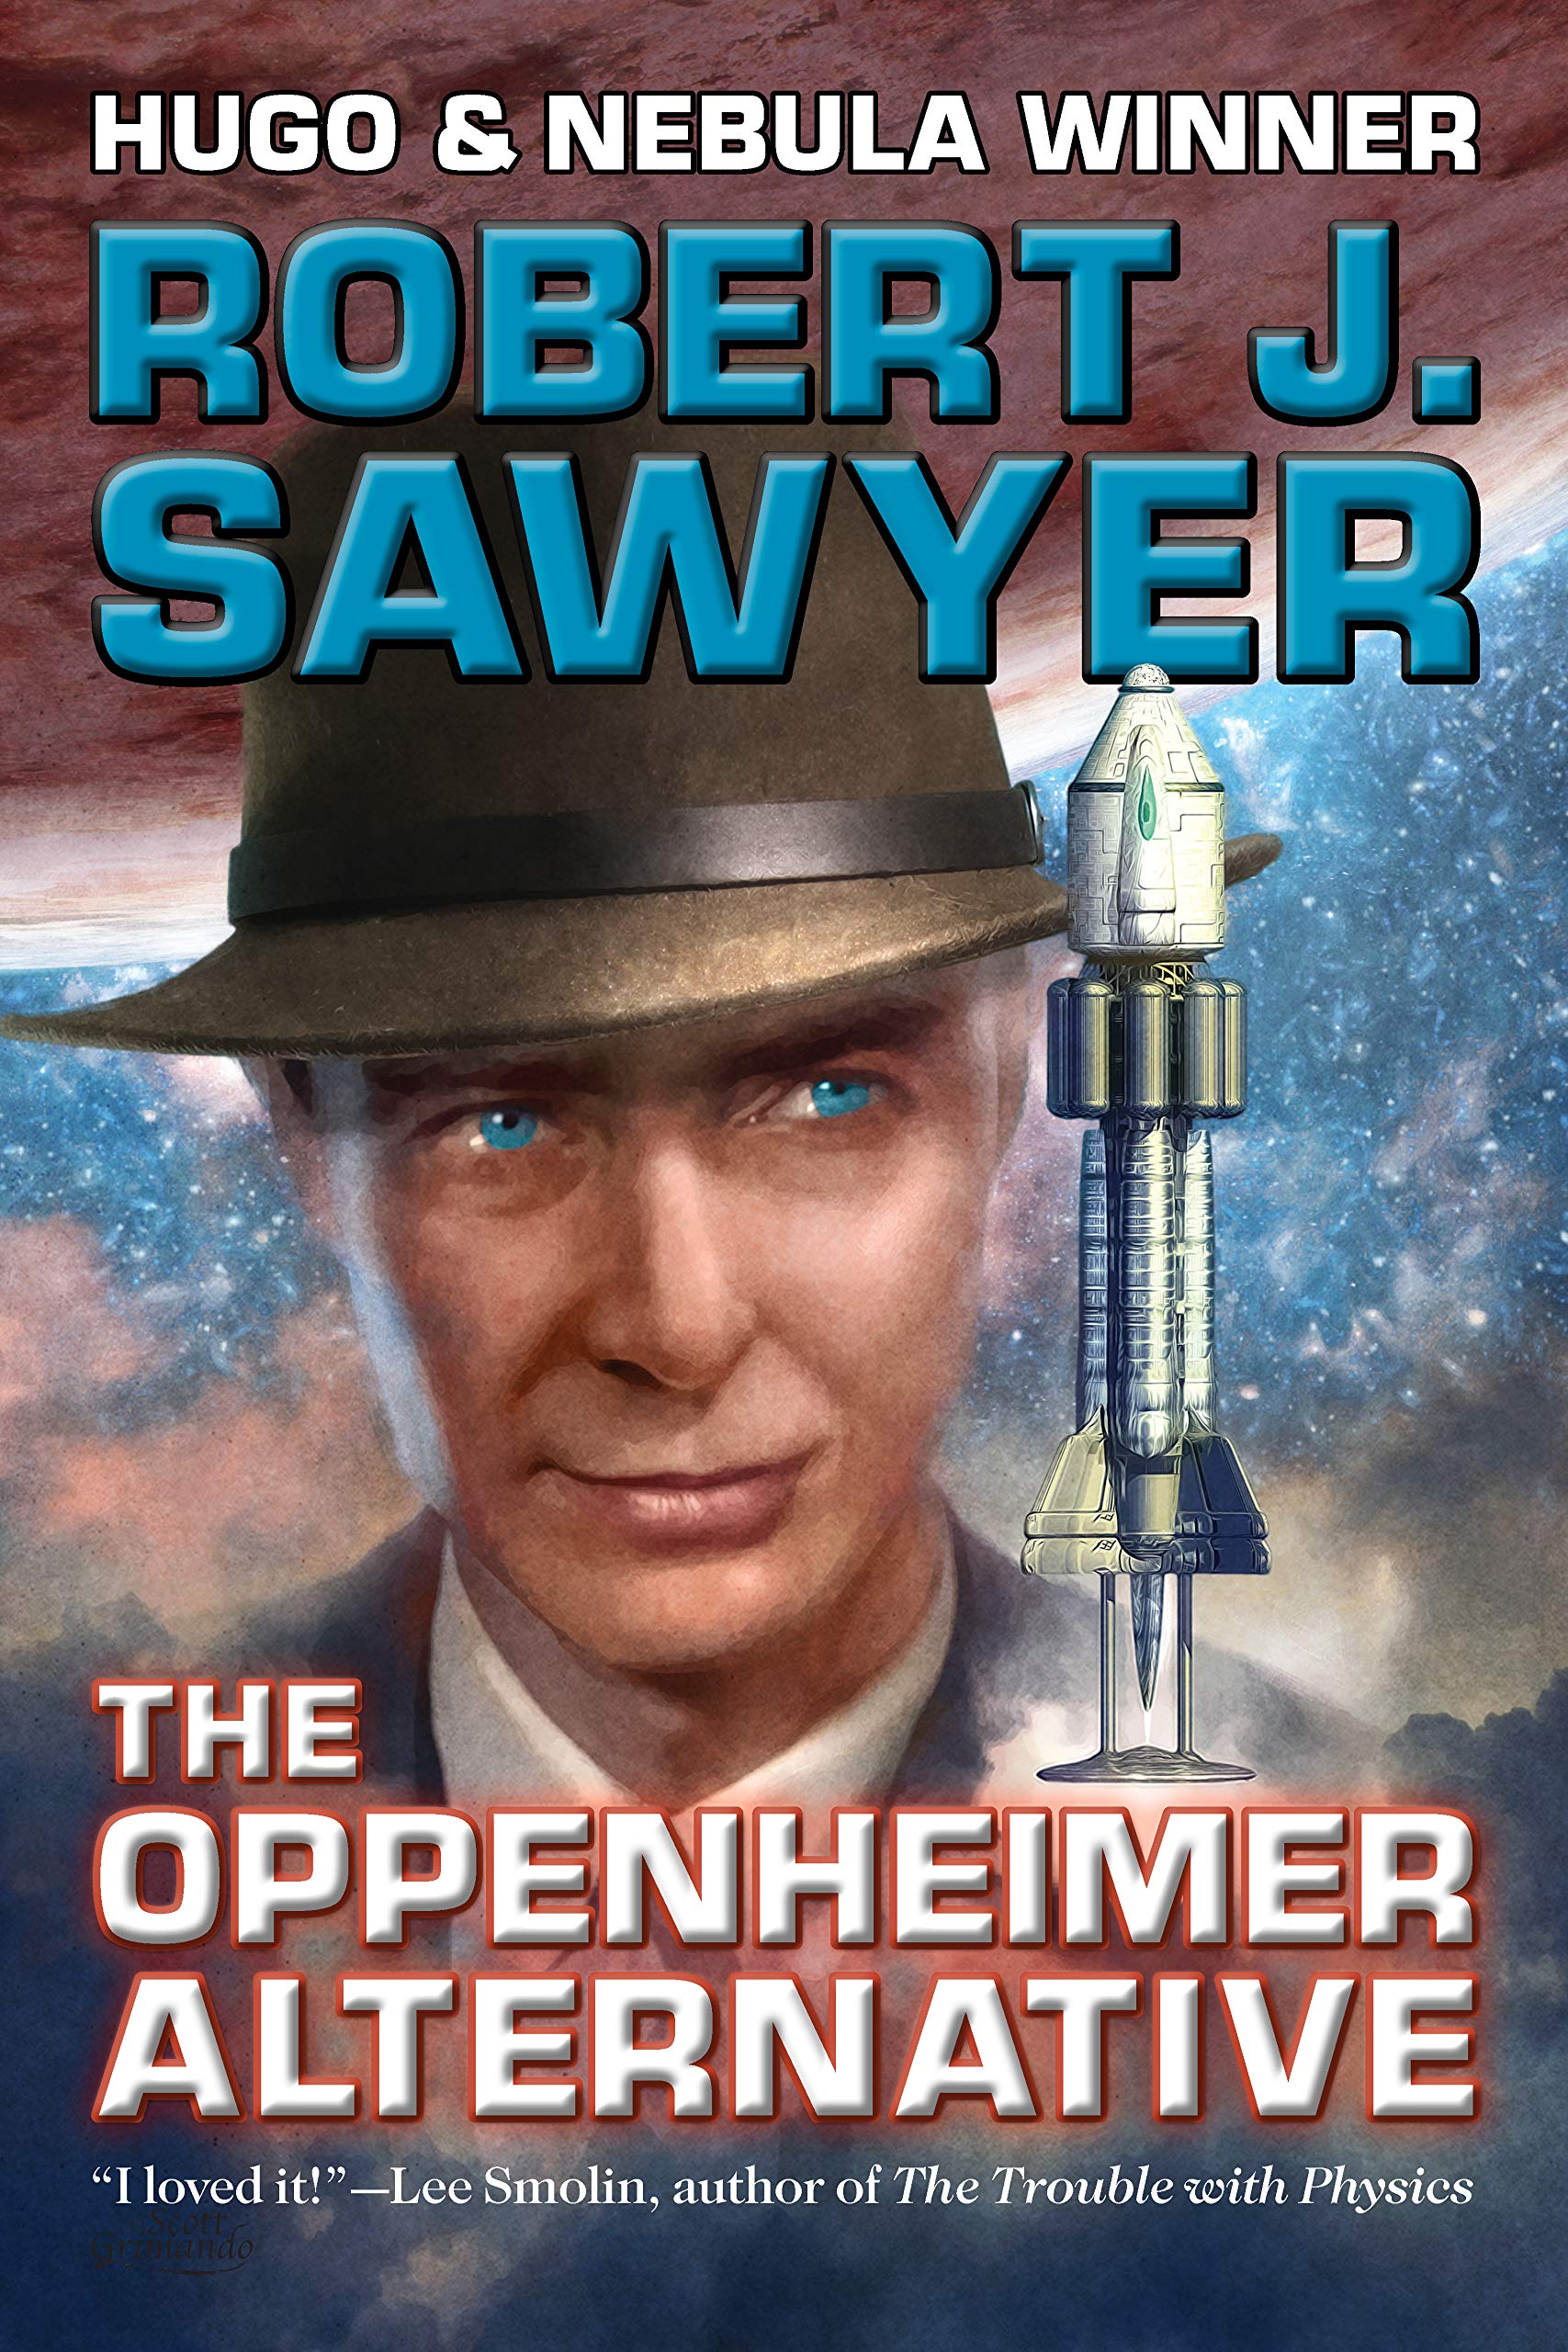 « The Oppenheimer Alternative », de Robert J. Sawyer